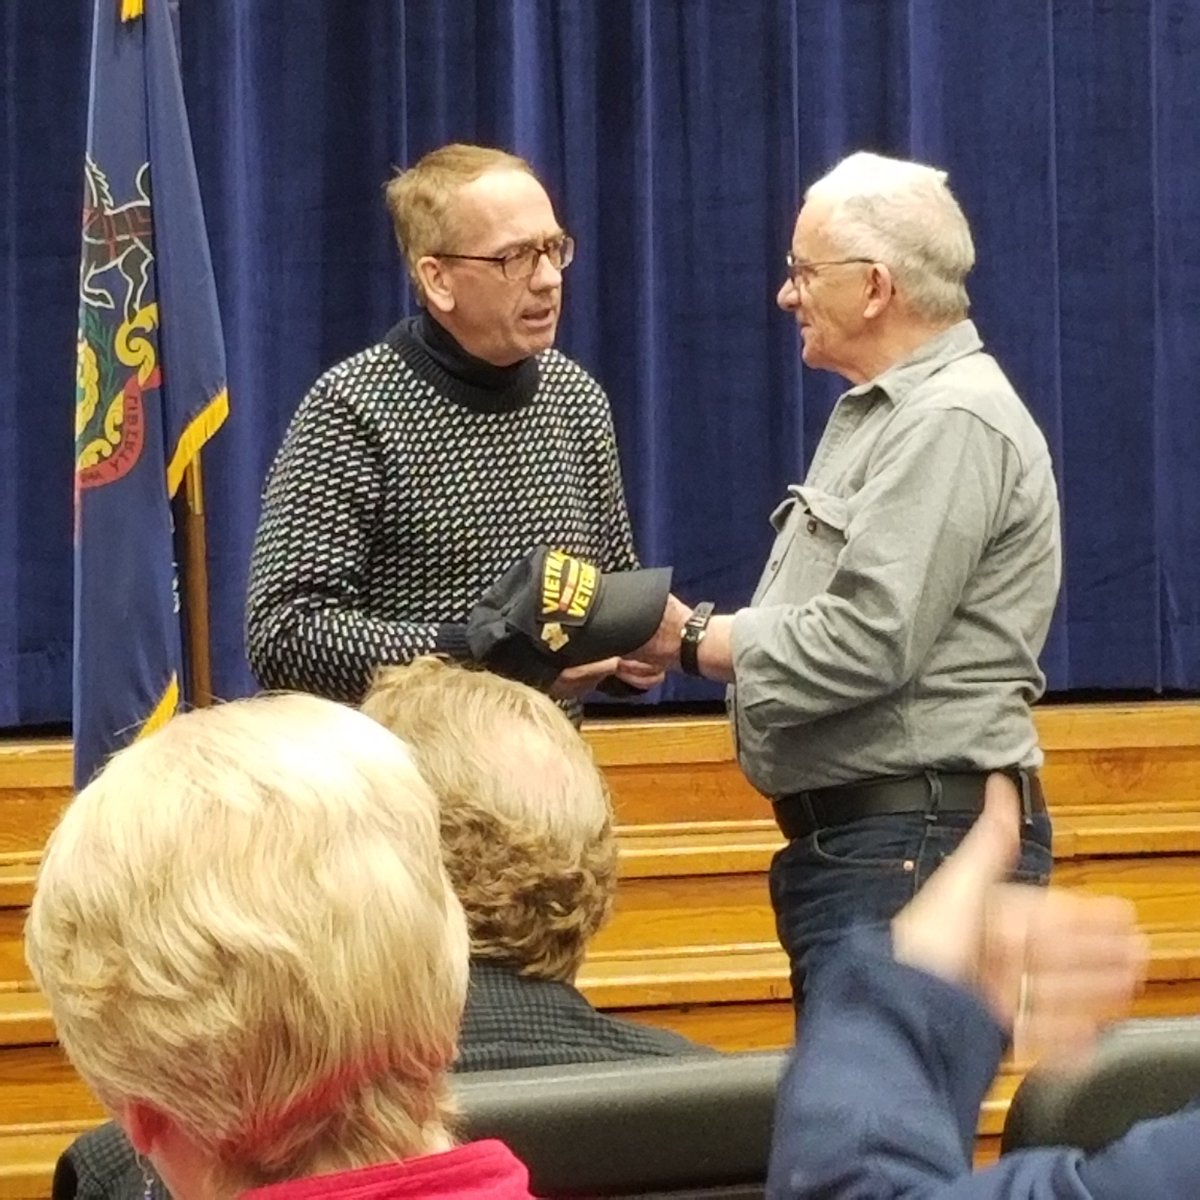 I was honored to recently take part in a pinning ceremony for Columbia County Vietnam veterans with Rep. Millard.